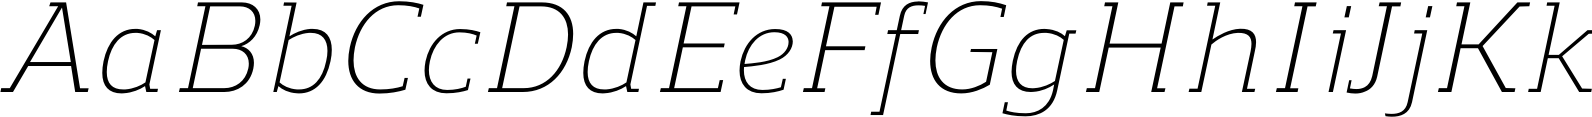 Regan Slab Light Italic